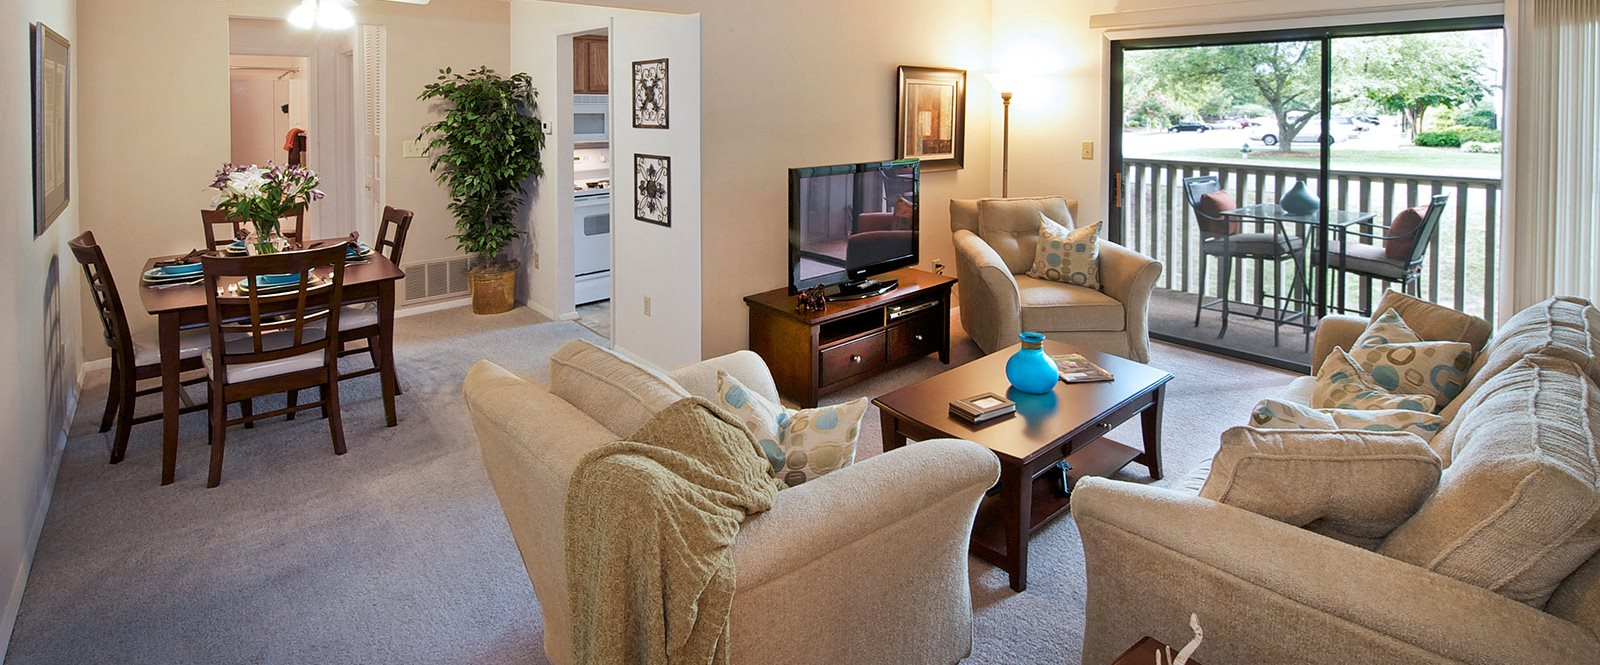 Garden Style Apartment Homes at Honeywood Apartment Homes, Virginia